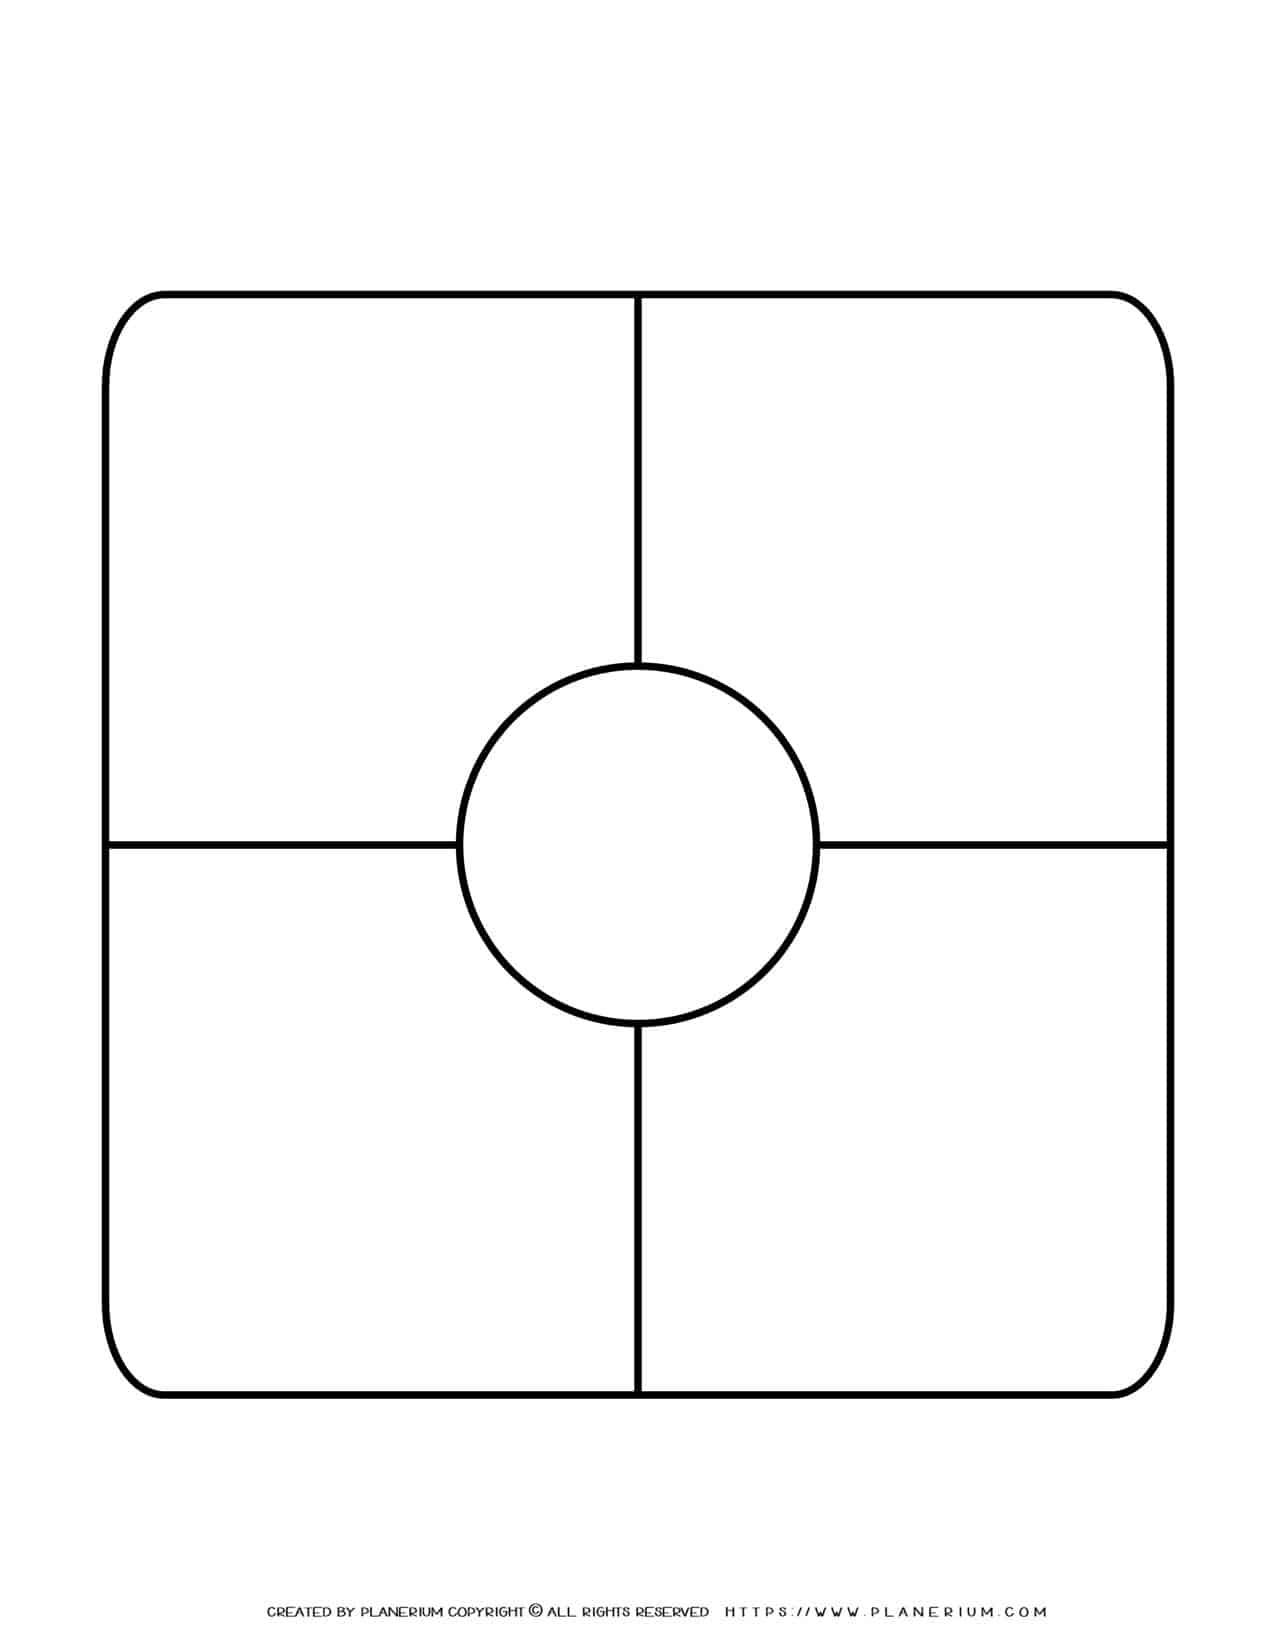 Story Map Template - Center Circle | Planerium